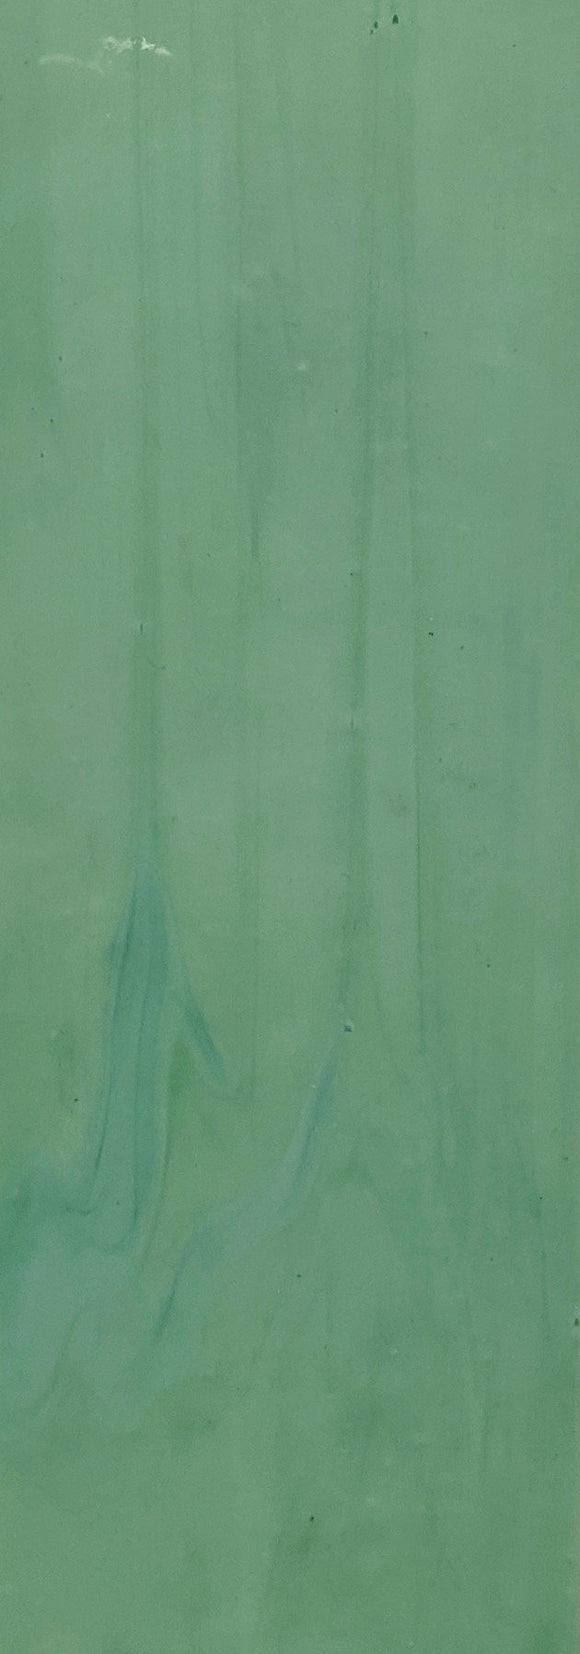 Armstrong Glass Company 31SO Mint Green Opalescent Stained Glass Glass Sheet